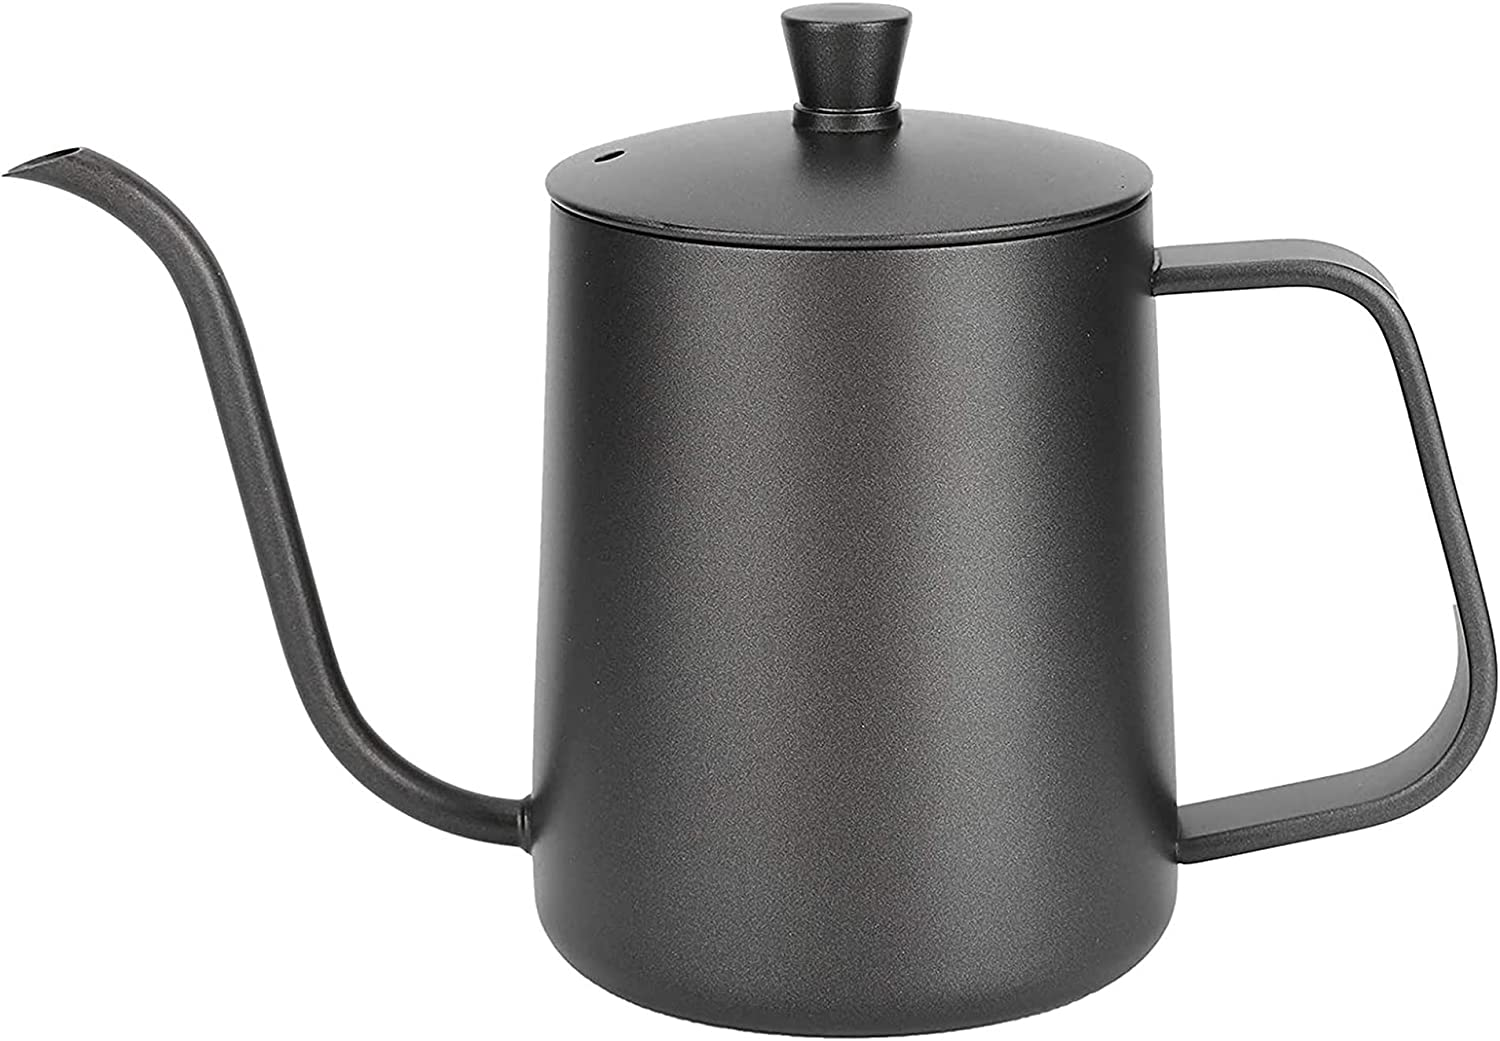 Coffee Drip Kettle Dealing full price reduction Time sale 90 degrees flow Simple durable water vertical